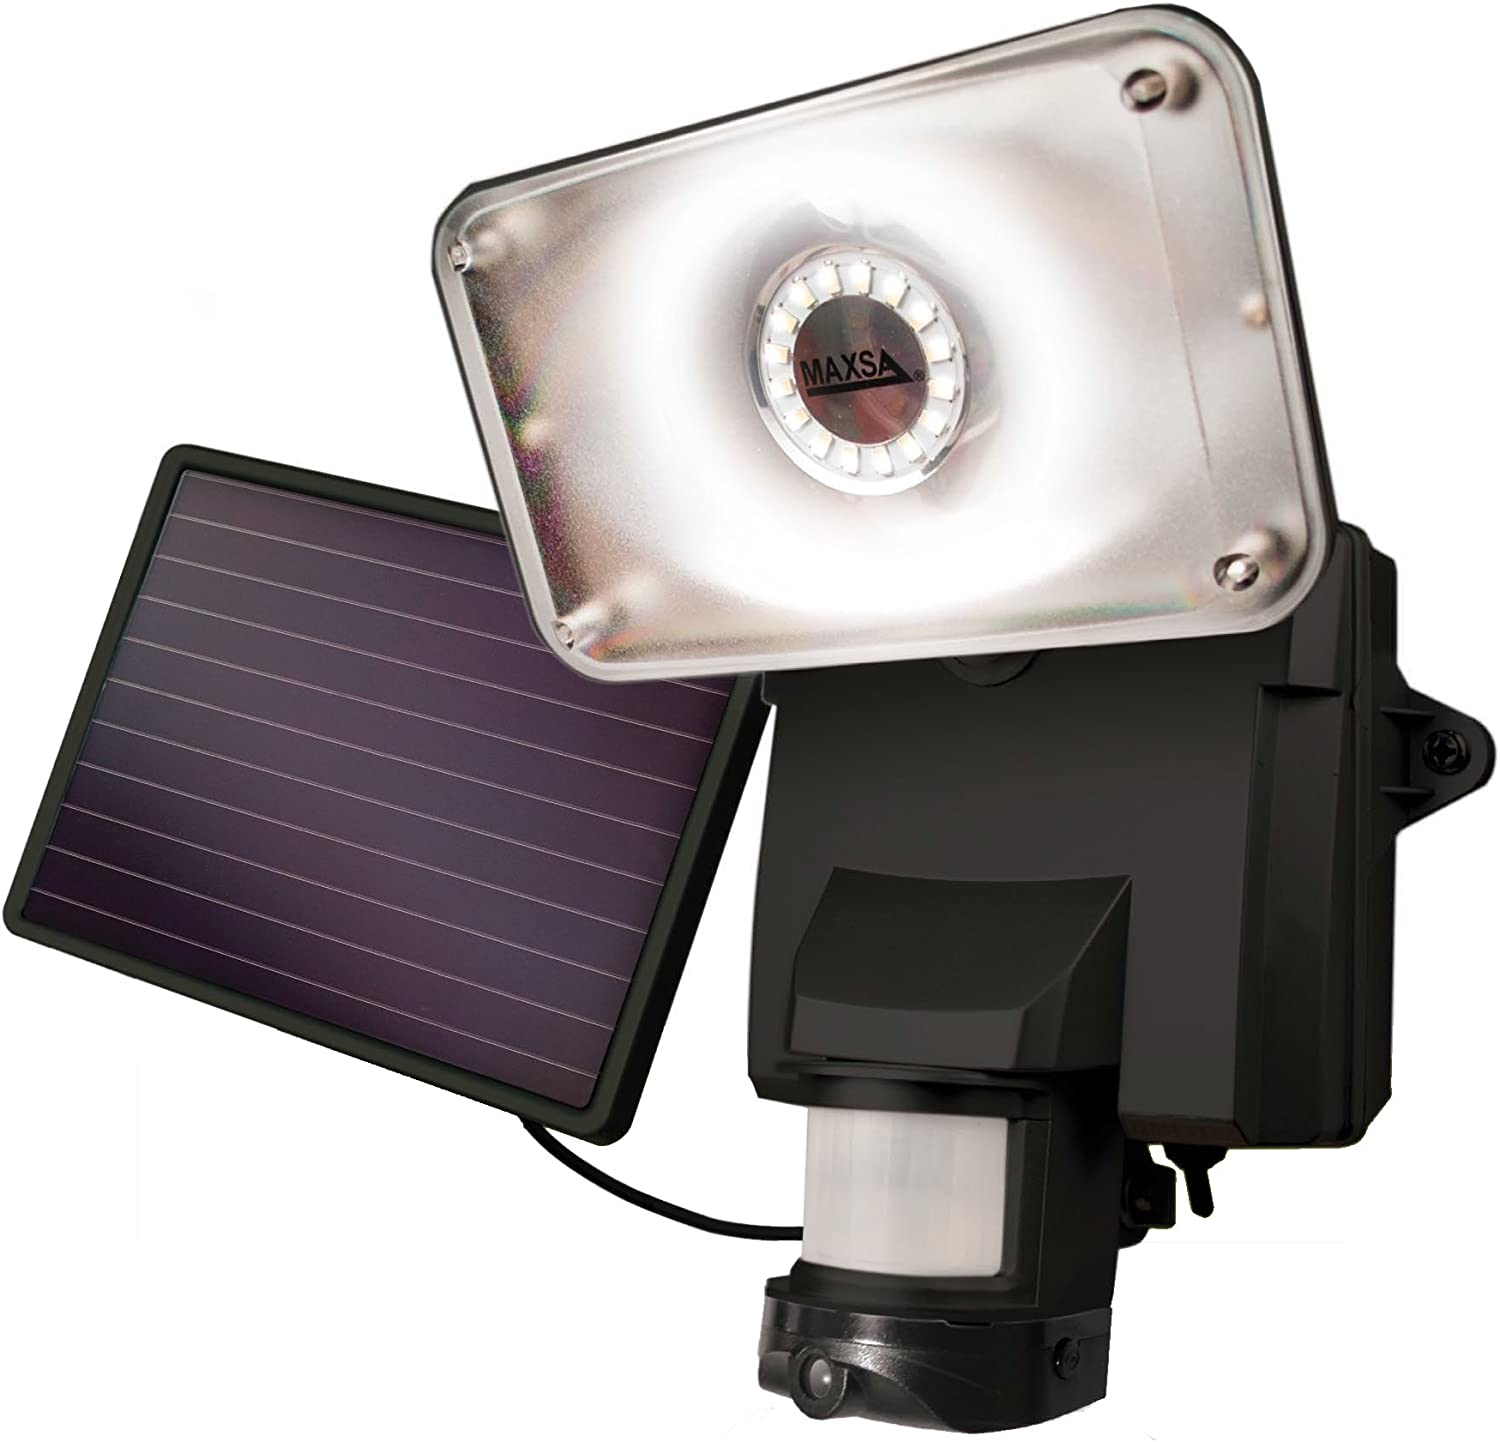 Maxsa 44642-CAM-BK Solar Powered Activate Video Sale Special Price Wireless Popular popular Motion